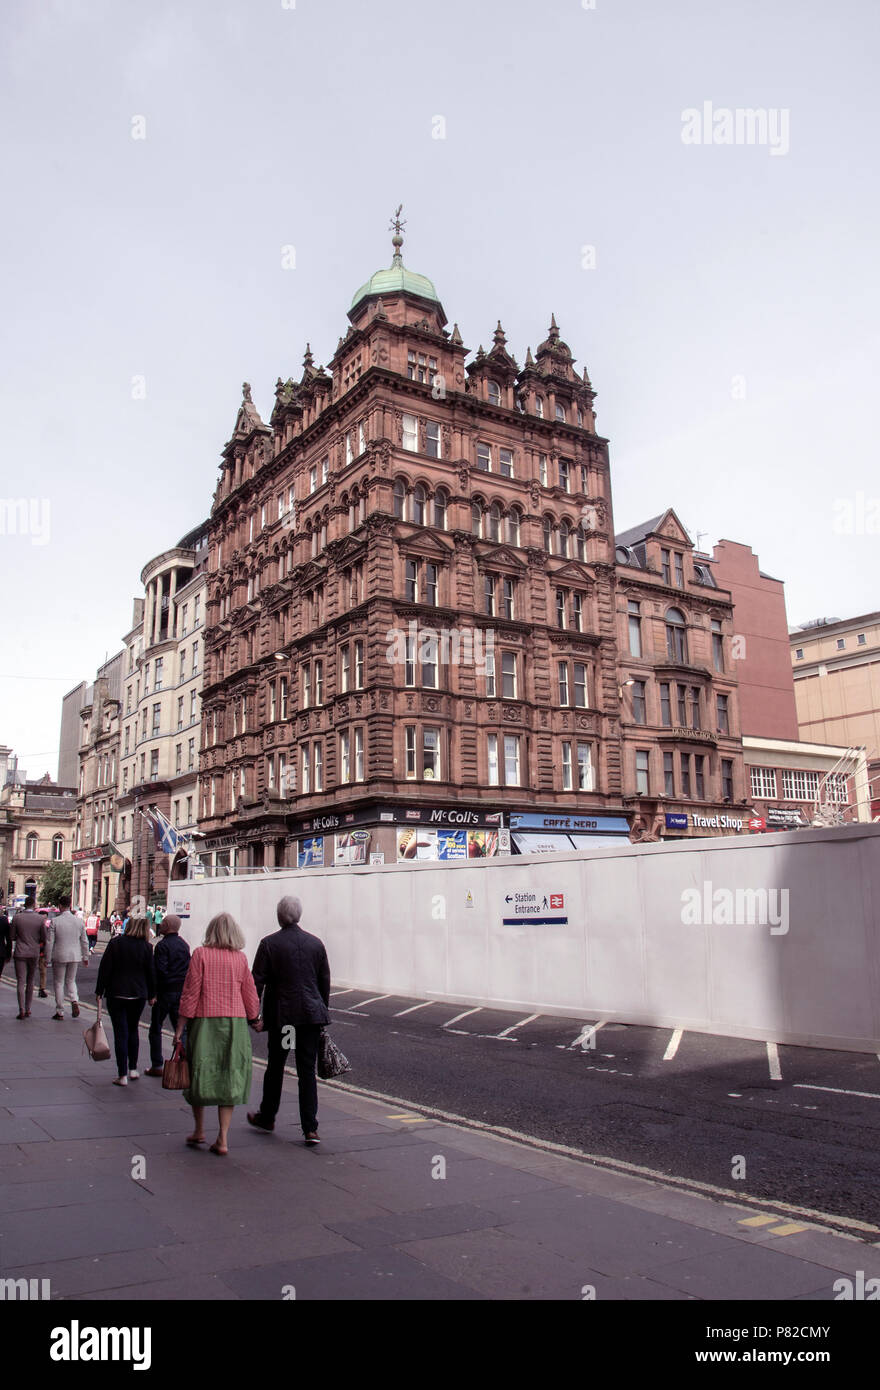 GLASGOW, SCOTLAND - JUNE 23rd 2018: A Glasgow Victorian building next to the £100 million redevelopment of the Glasgow Queen Street train station. - Stock Image